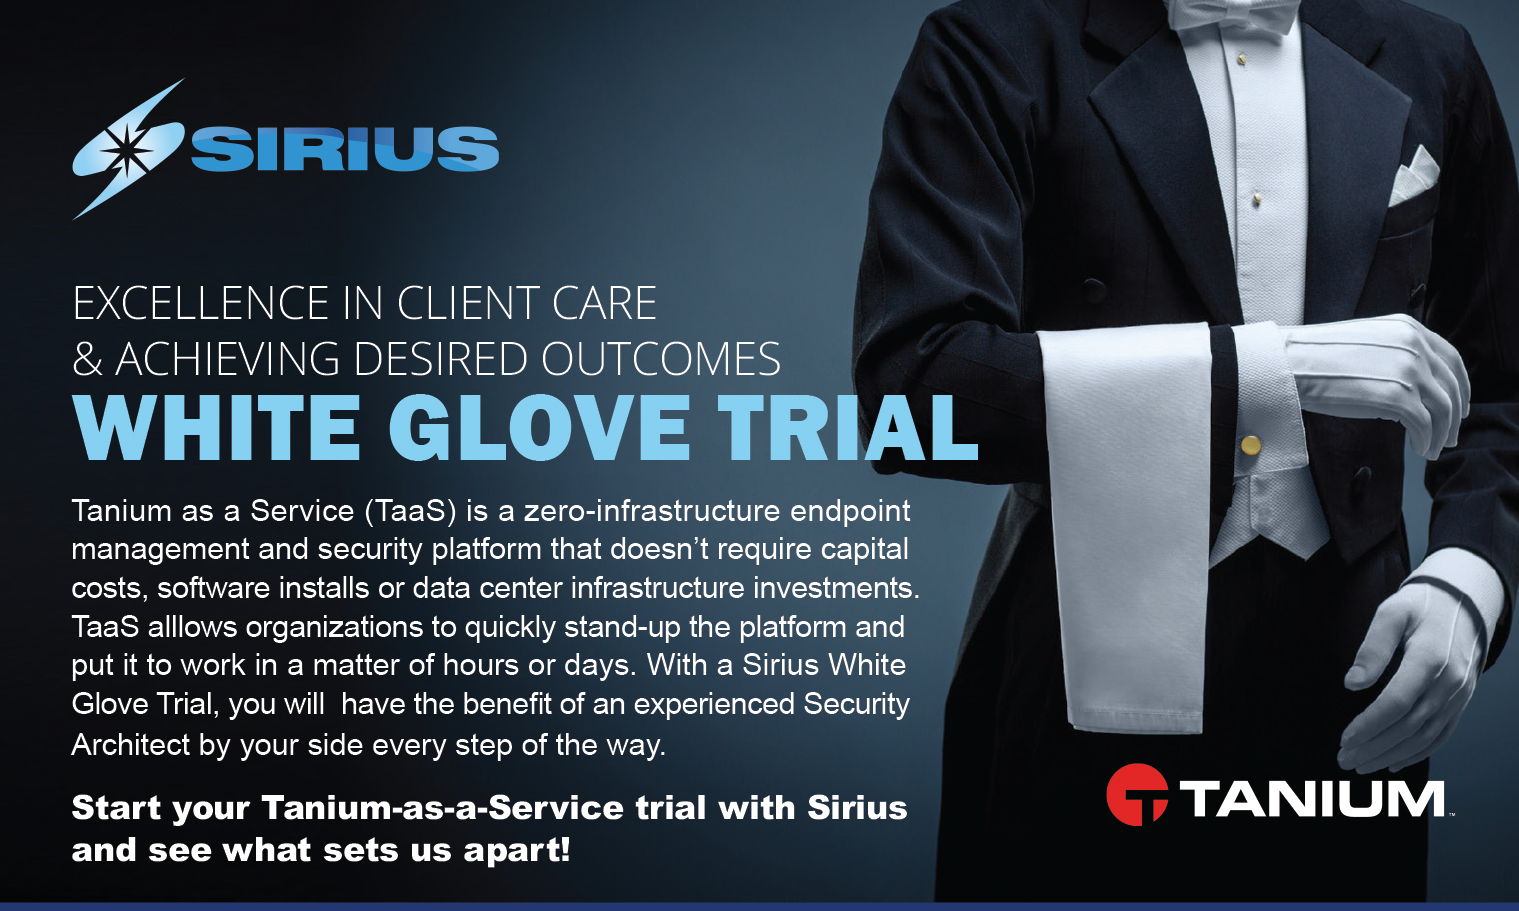 Excellence in client care & achieving desired outcomes: Whit Glove Trial